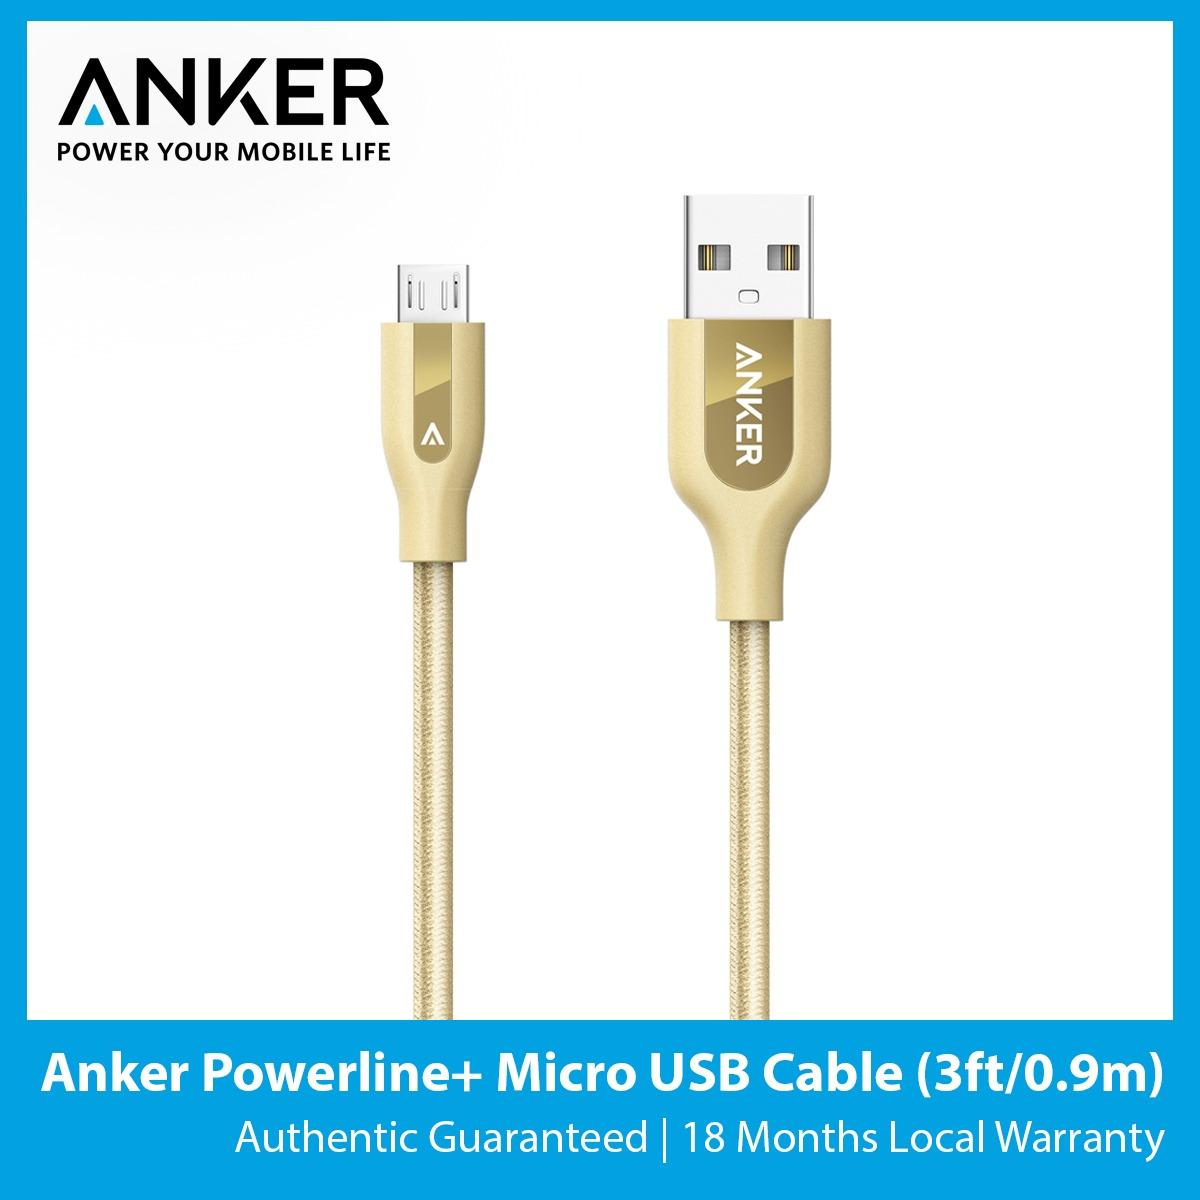 Price Comparisons For Anker Powerline Micro Usb Cable 3Ft 9M